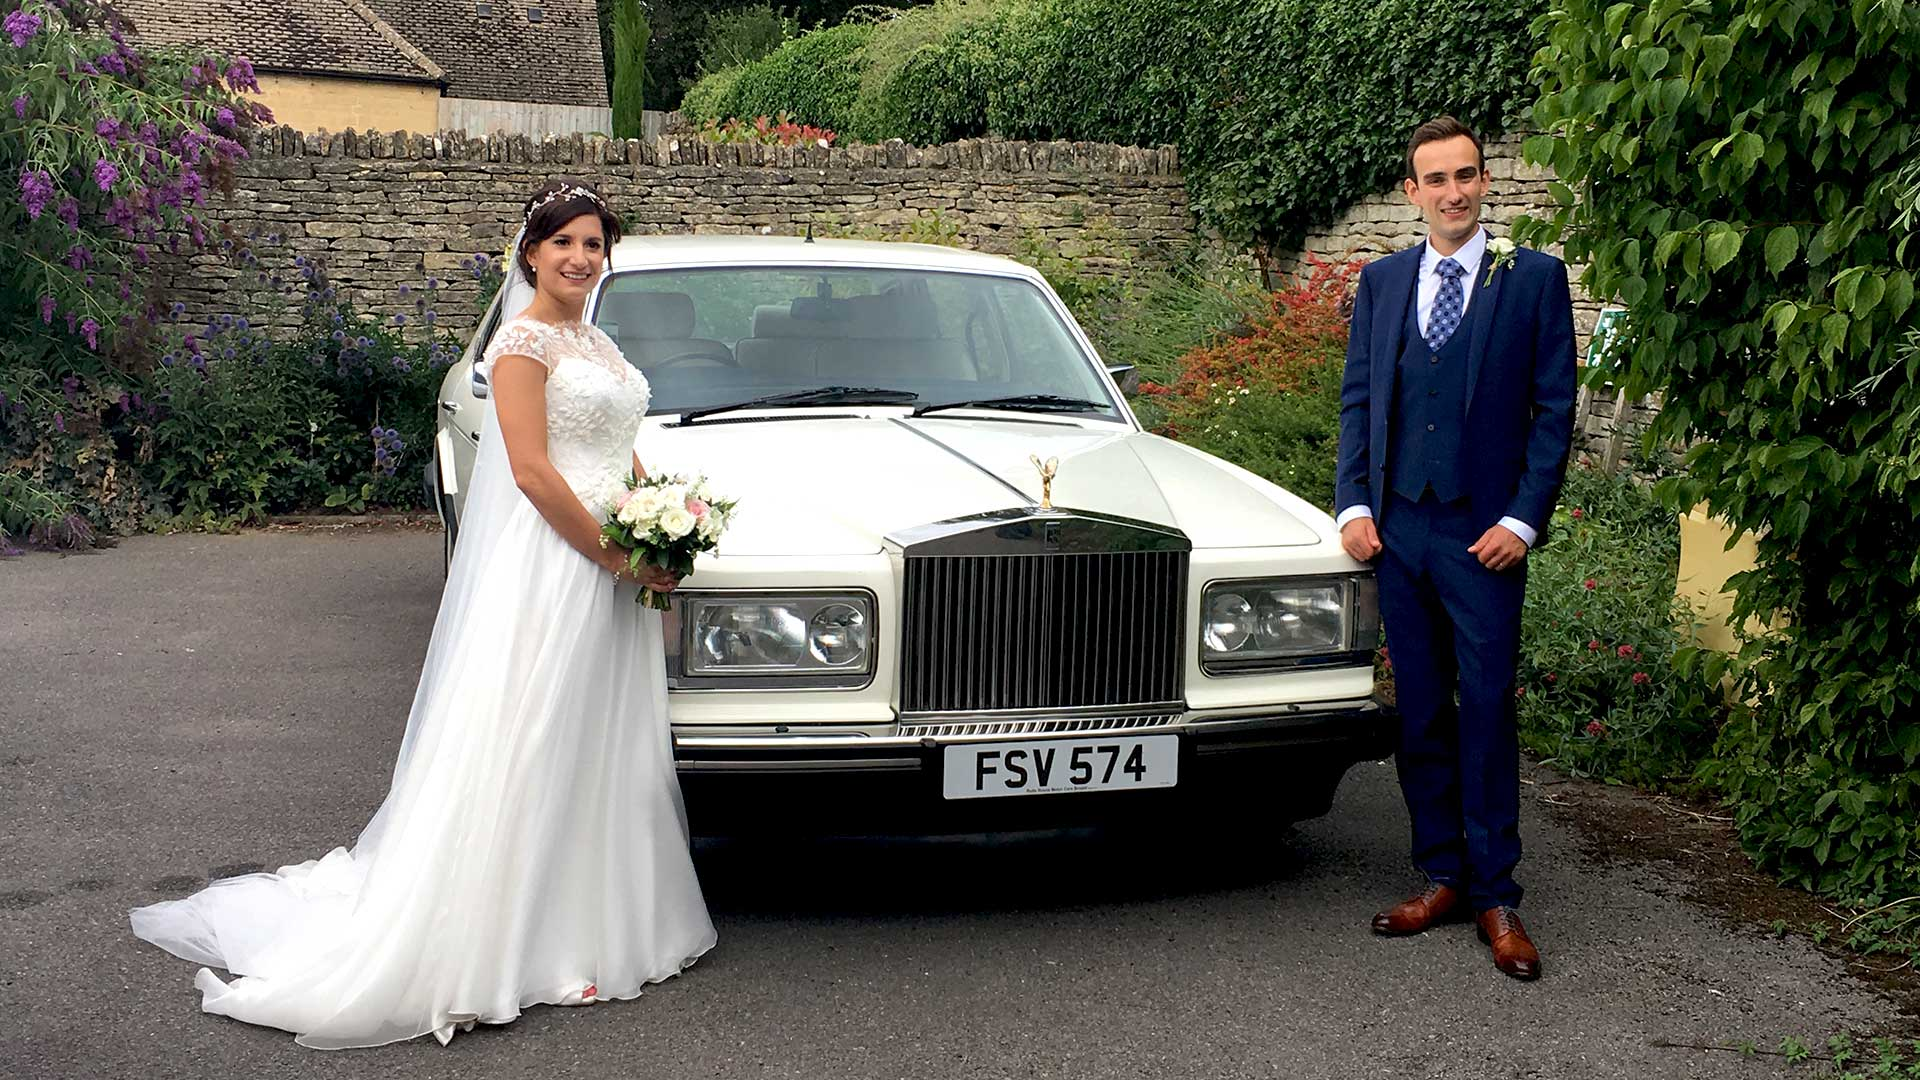 Newly-wed couple Duncan and Katerina with the Rolls-Royce Silver Spur wedding car